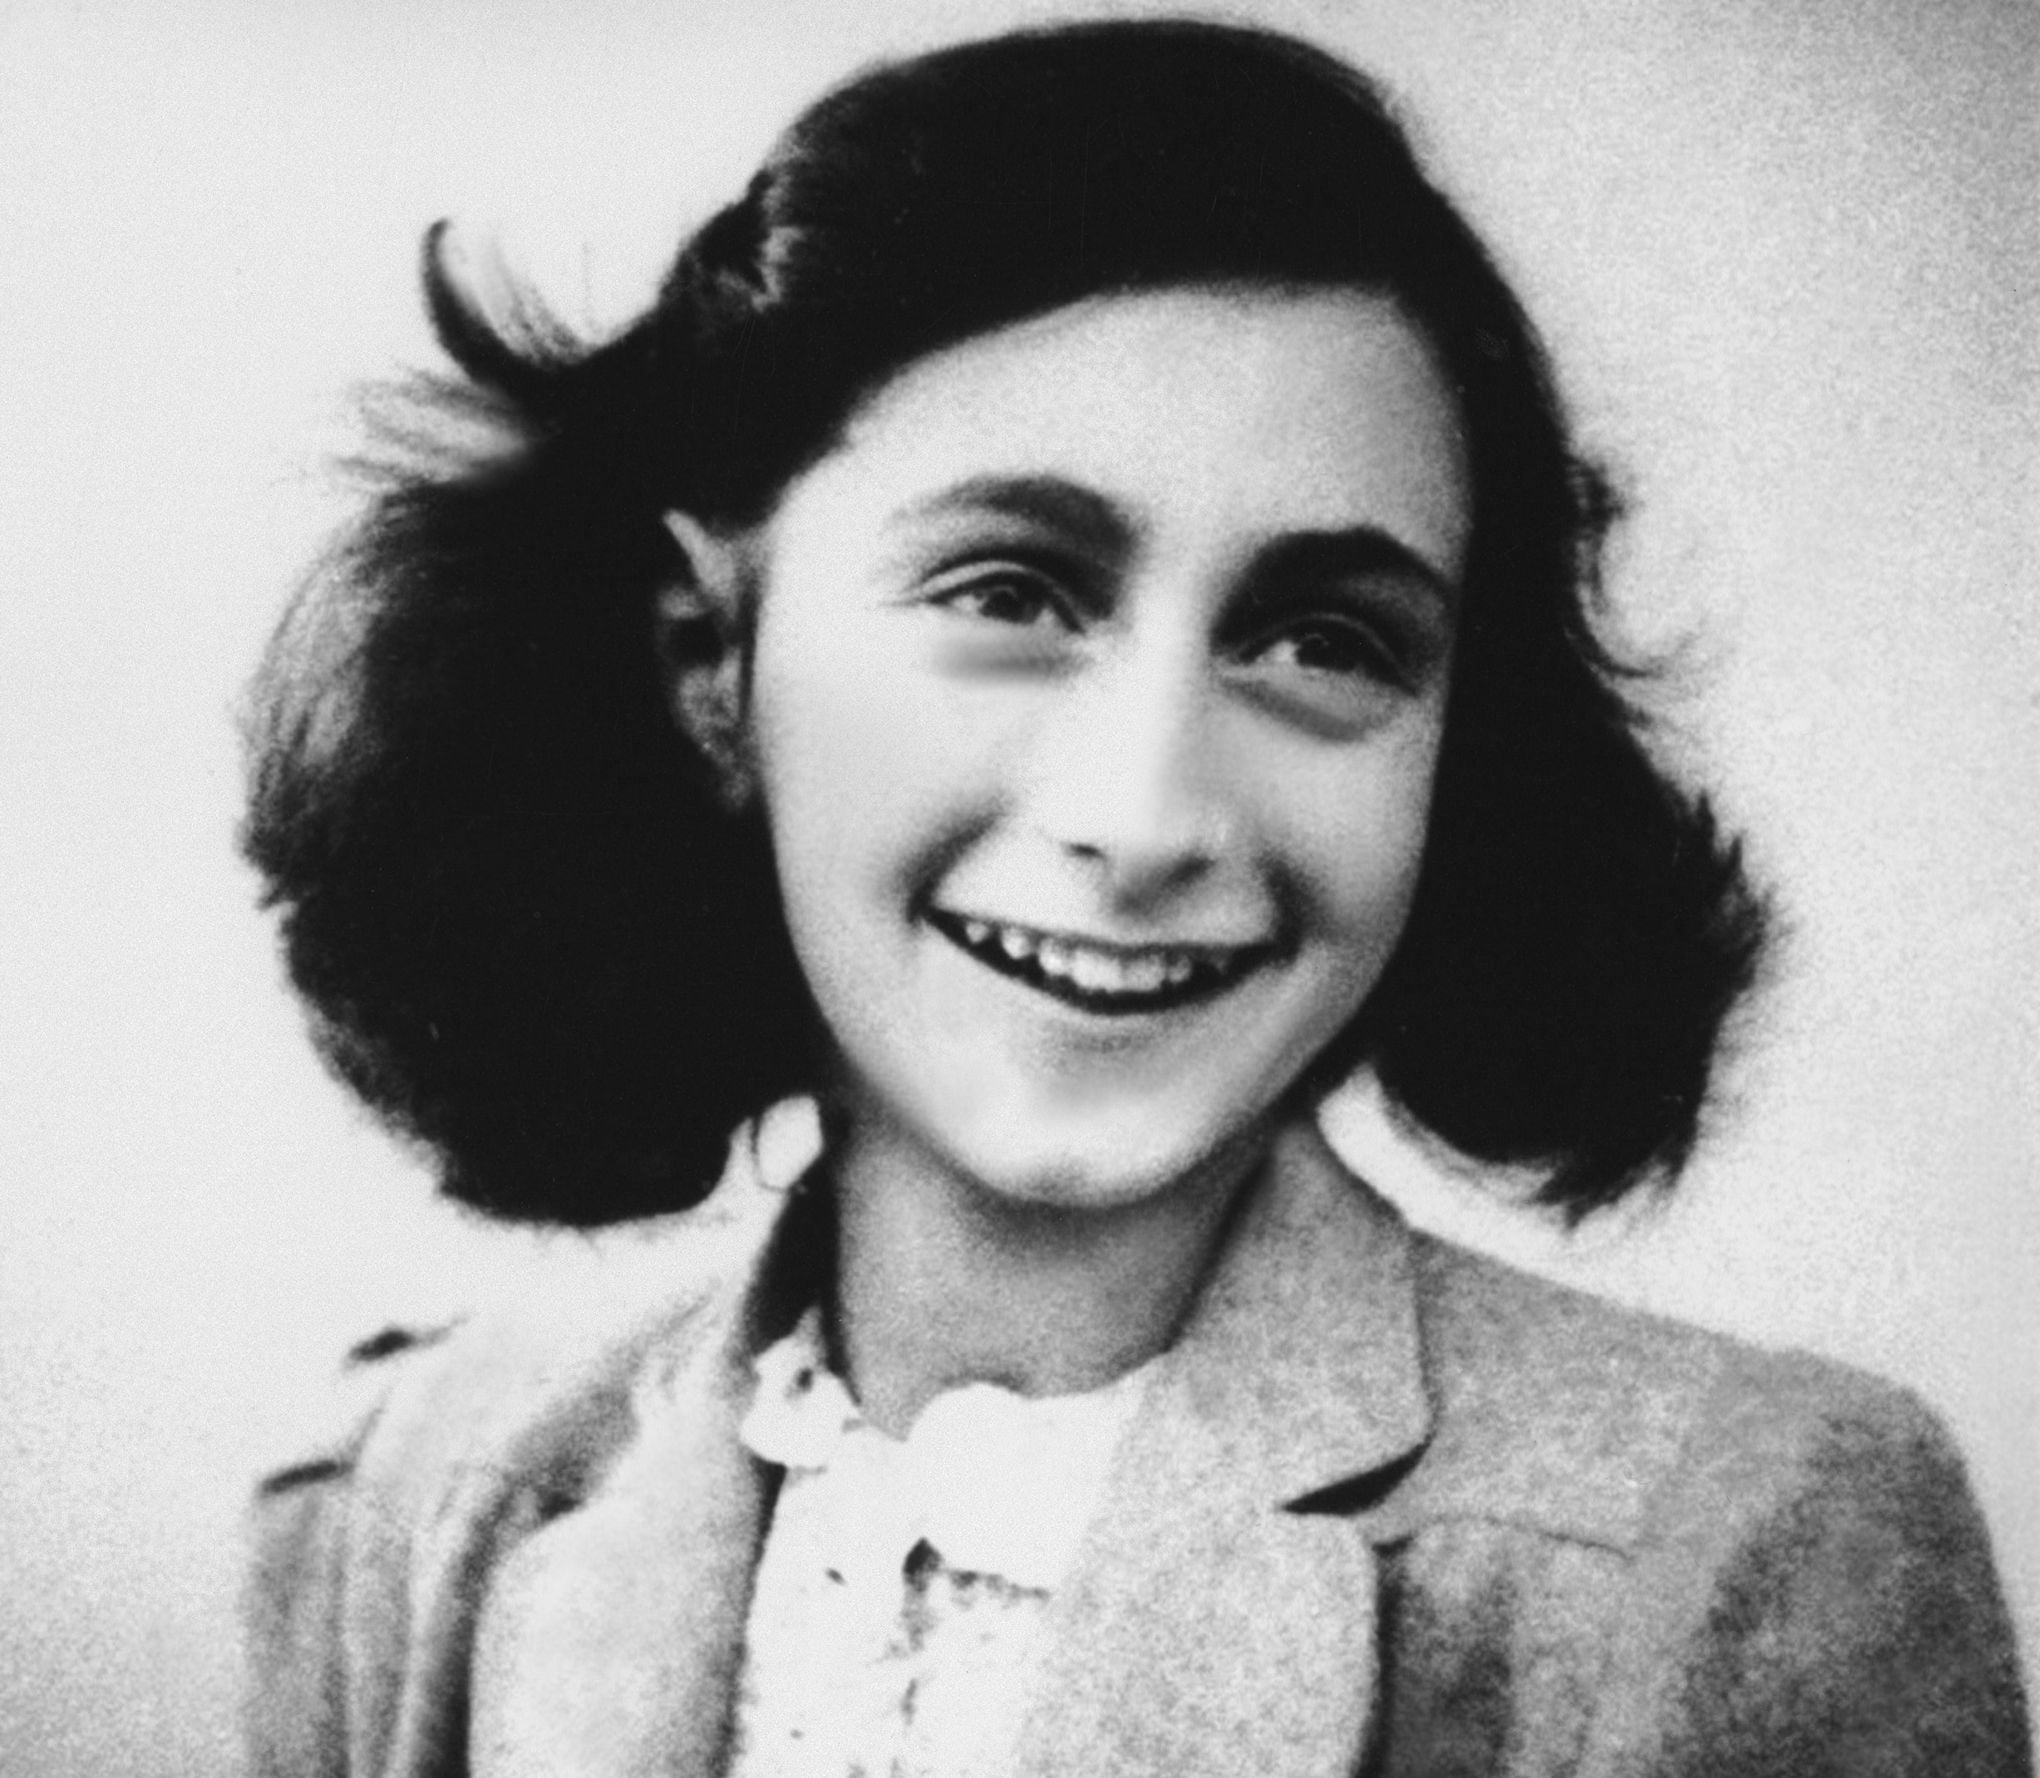 Anne Frank (1929-1945) jeune juive allemande auteur d'un journal intime, elle mourut au camp de concentration de Bergen-Belsen --- Anne Frank (1929-1945) young German-Jewish diarist, she died in concentration camp of Bergen-Belsen